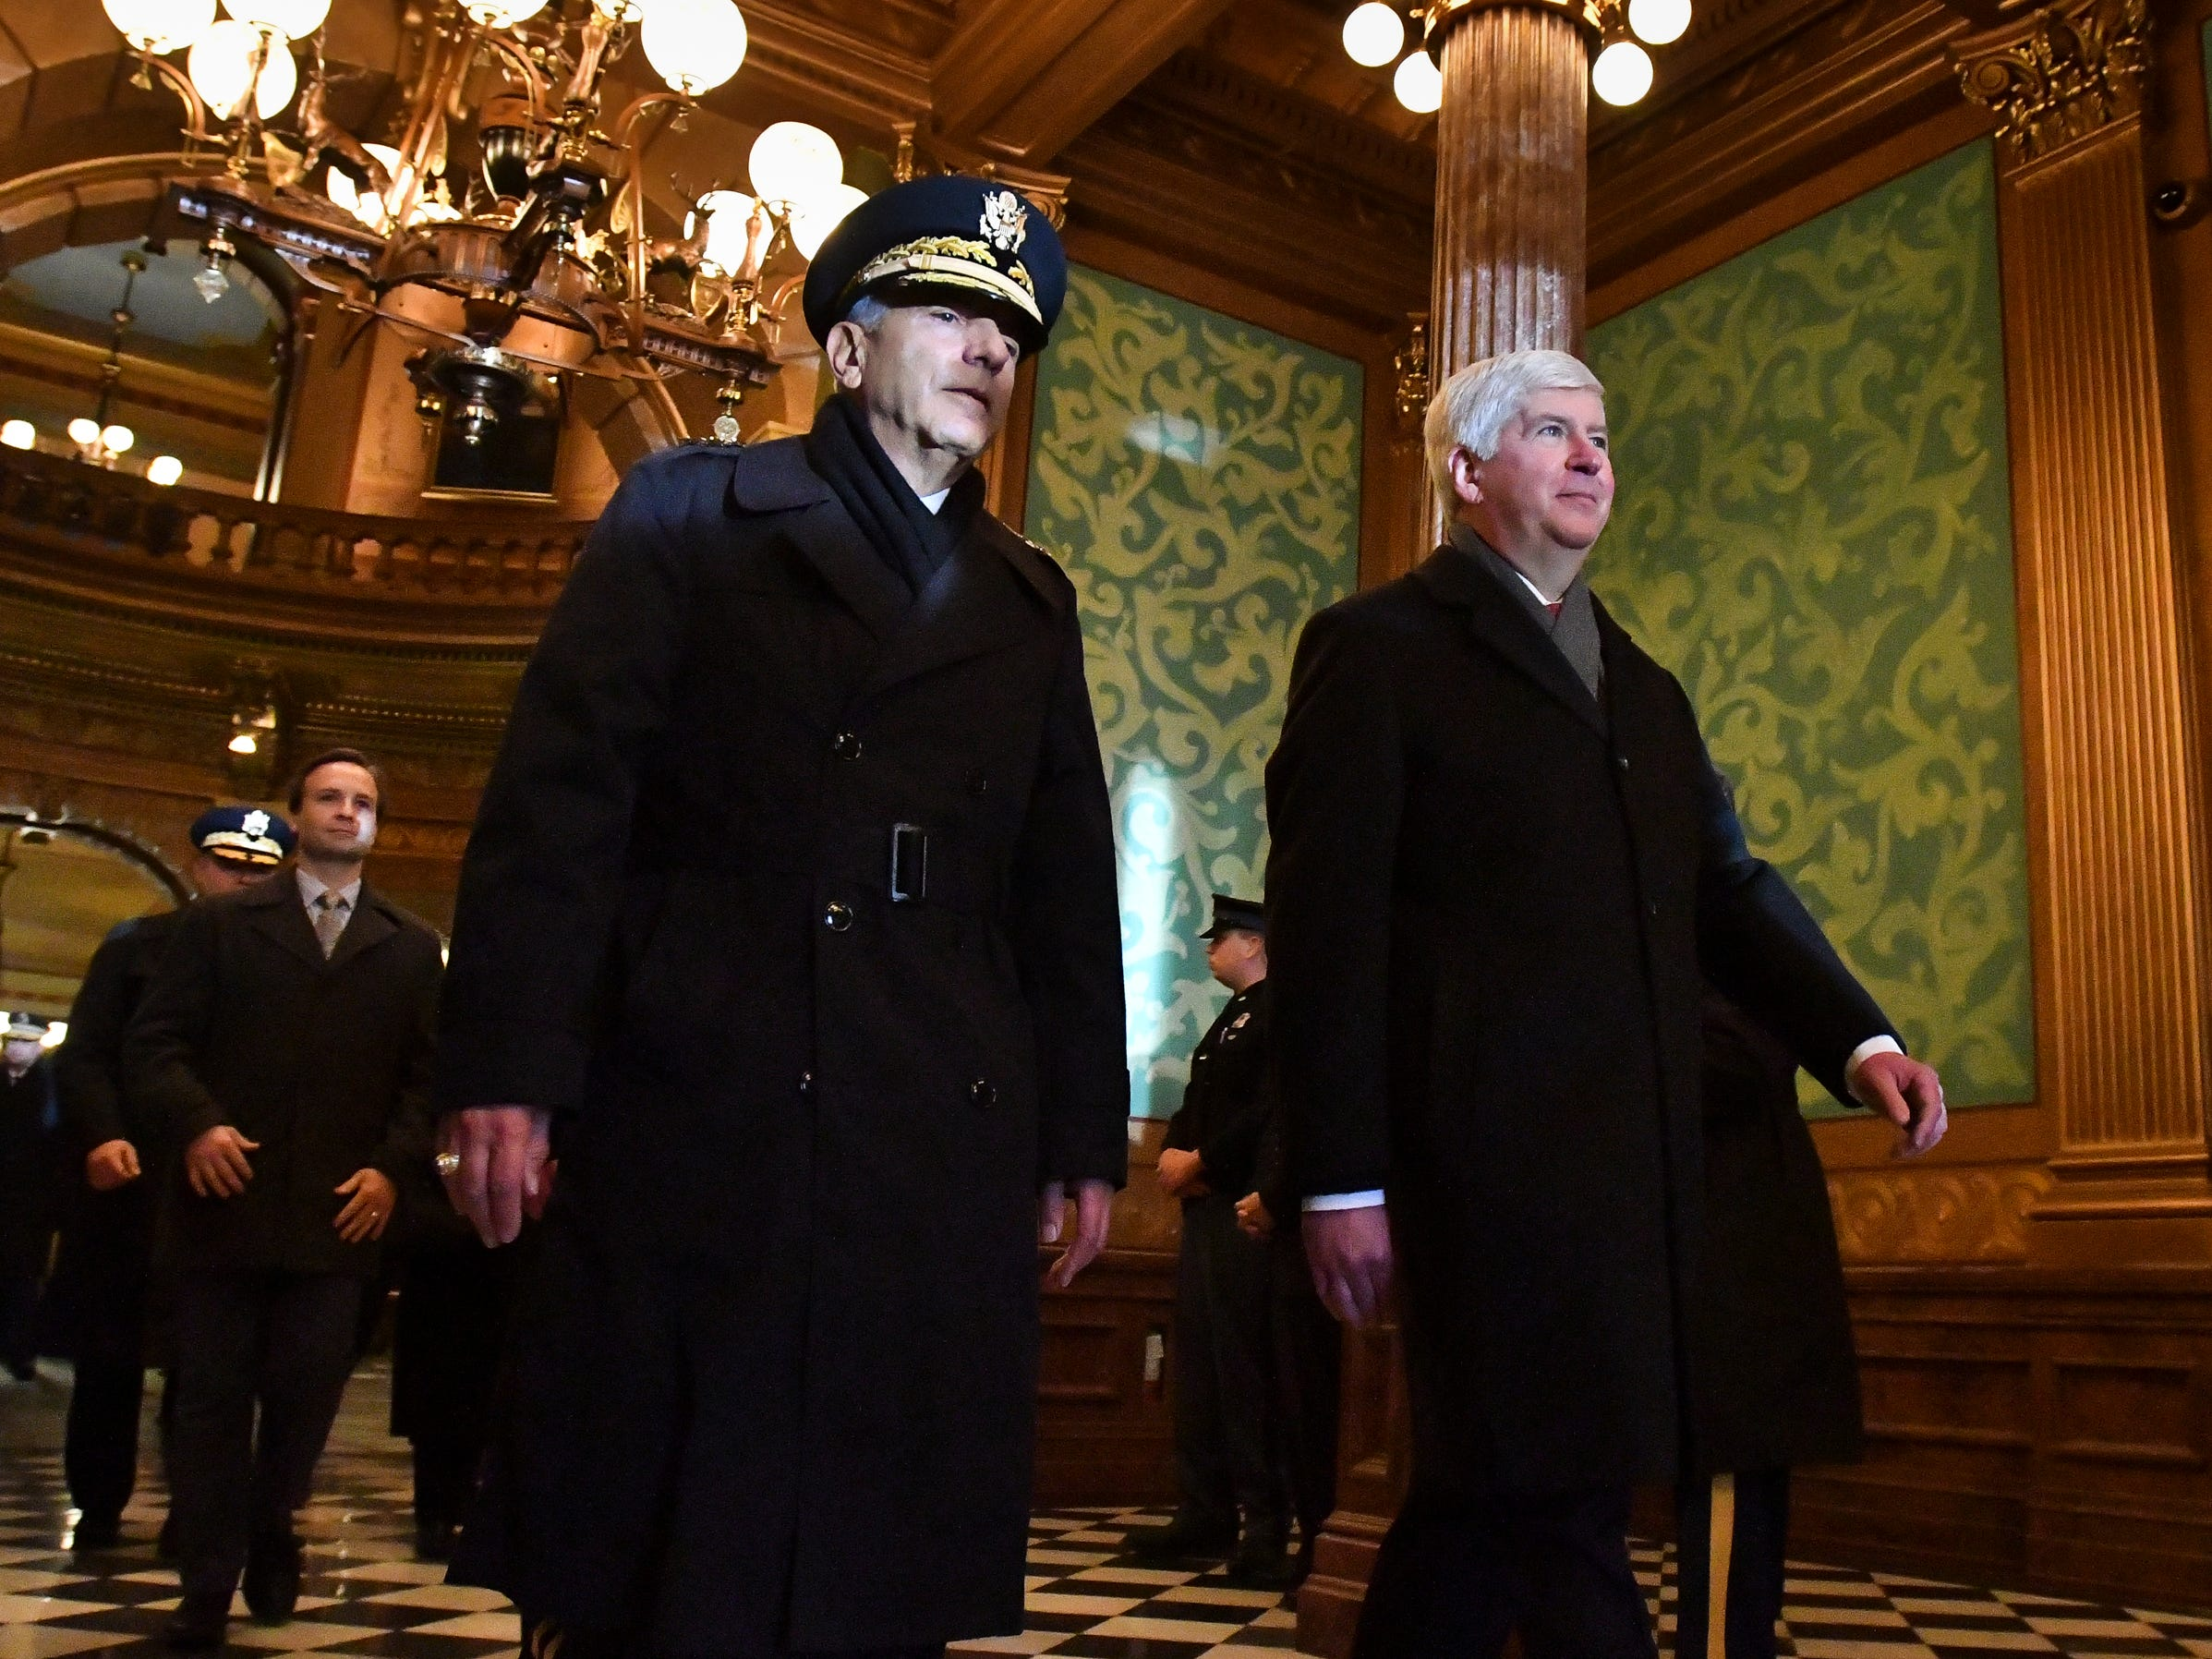 Former Michigan Governor Rick Snyder is escorted by a member of the military to the Capitol steps for the 2019 inauguration Tuesday, Jan. 1, 2019.